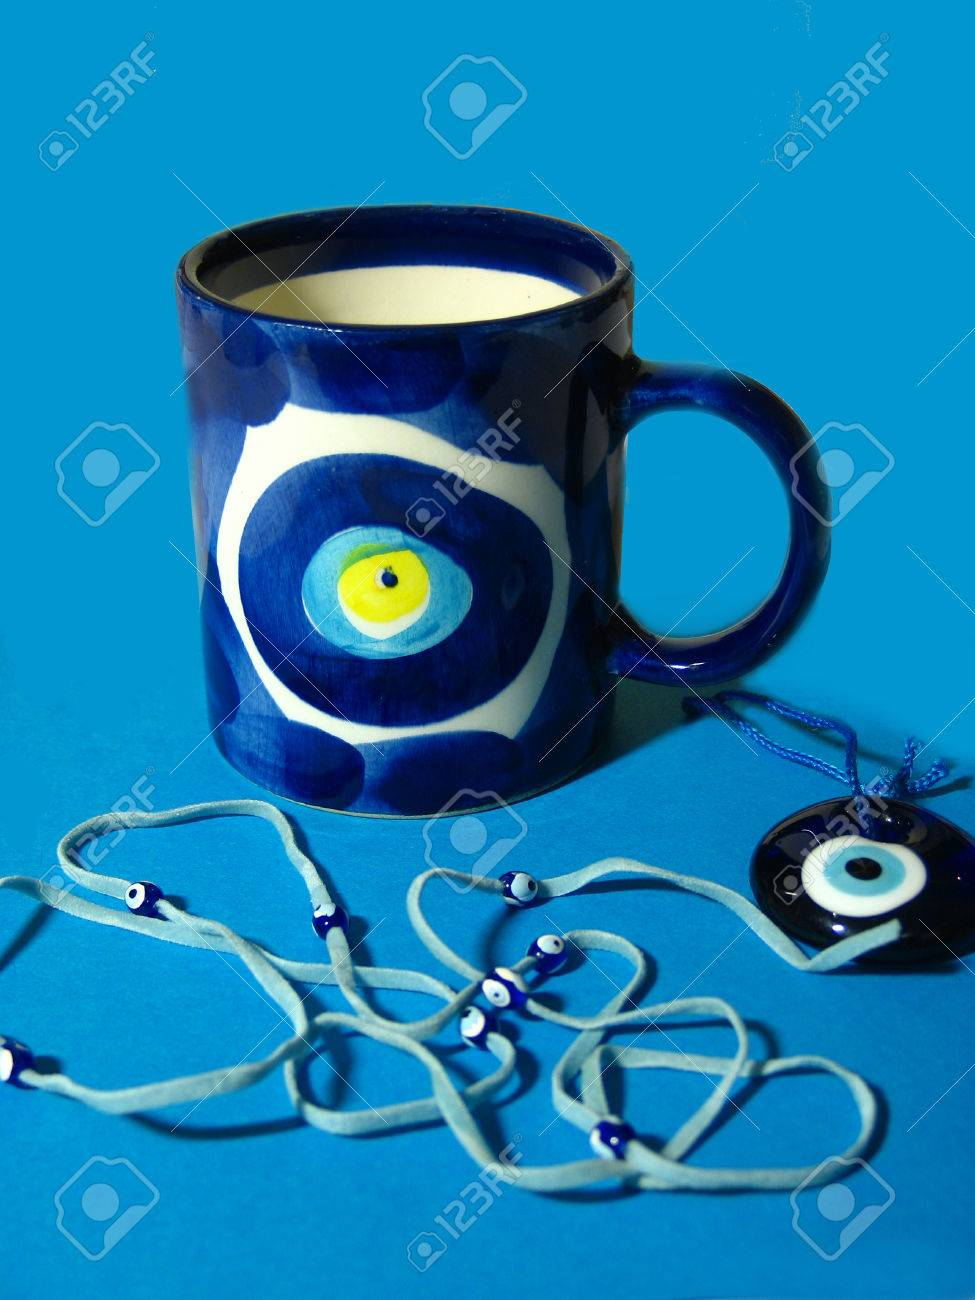 Souvenirs from Turkey with traditional Nazar - blue evil eye